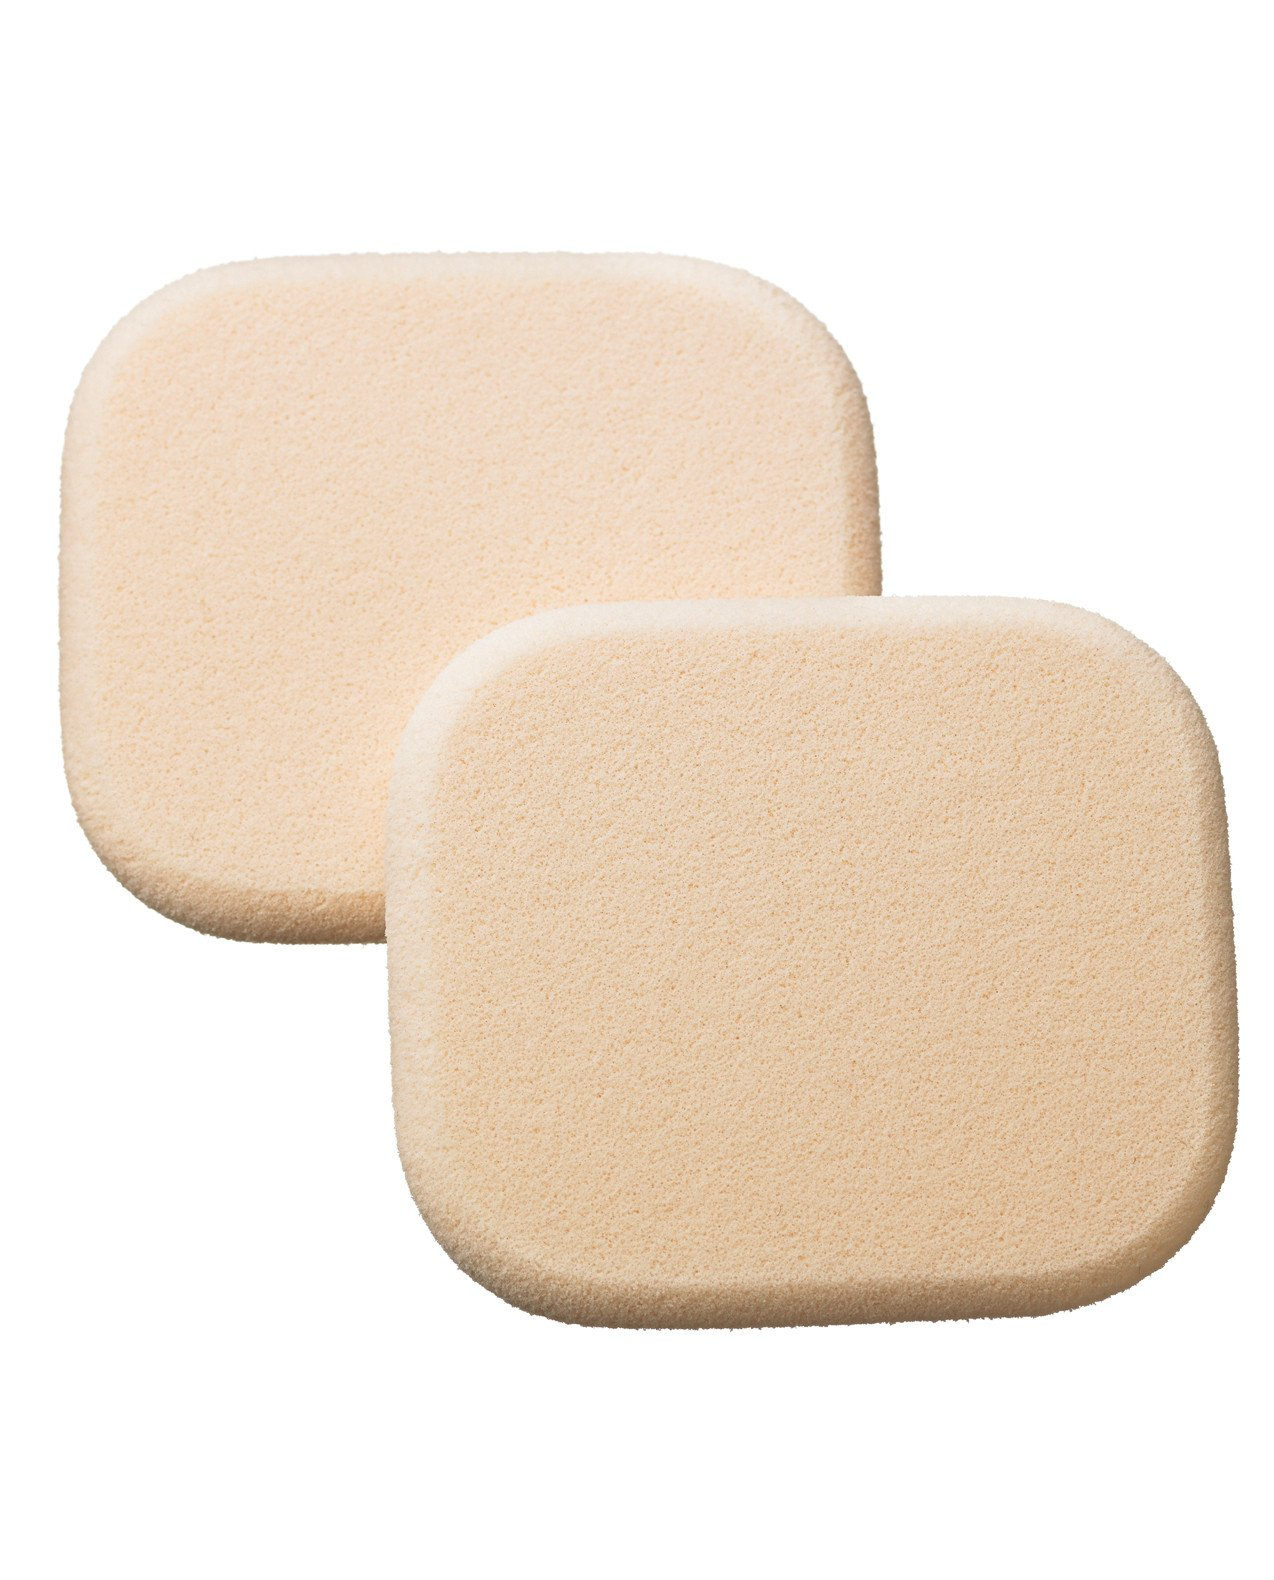 Silky Moist Compact Sponges Image